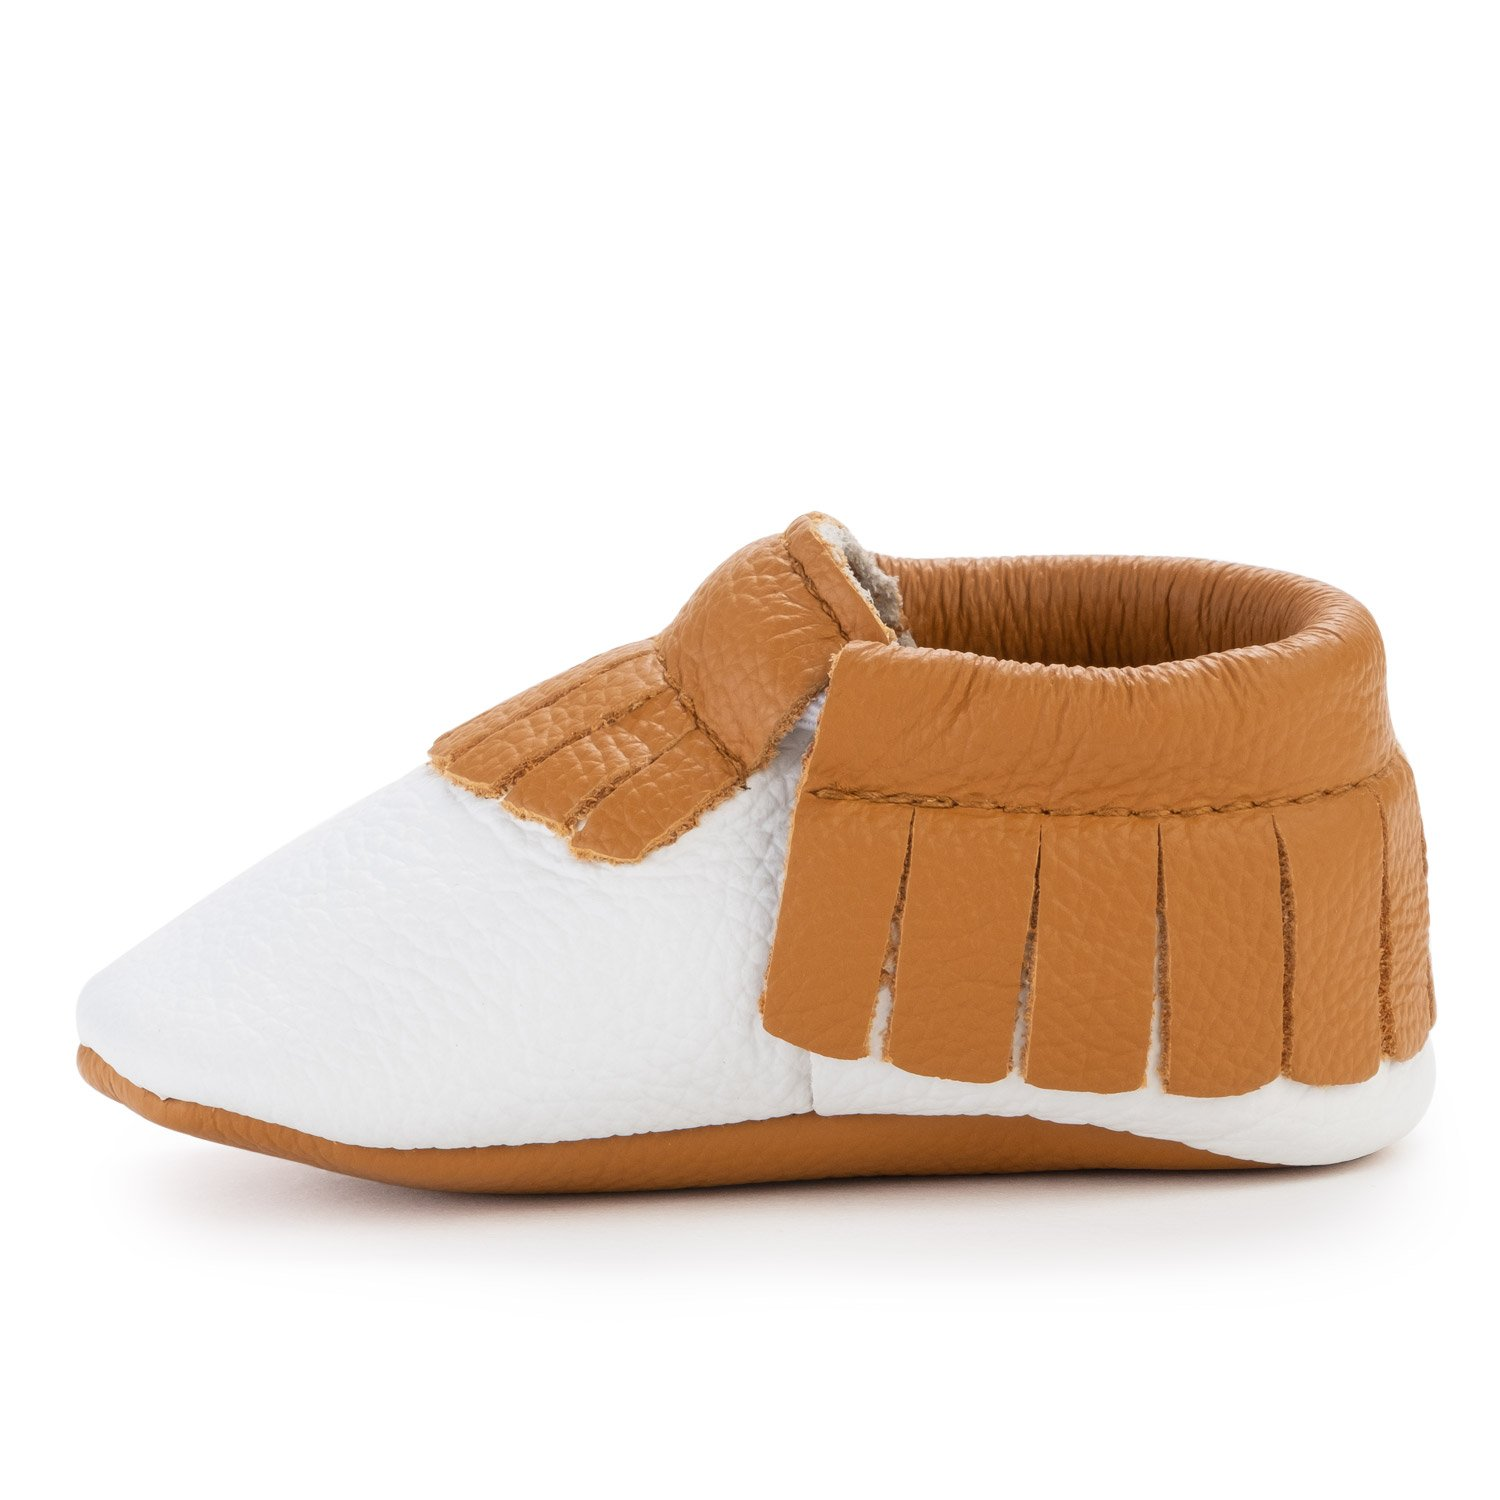 BirdRock Baby Moccasins - Soft Sole Leather Boys and Girls Shoes for Infants, Babies, and Toddlers (Preschooler | 3-4 Years | US 9.5, Harvest)